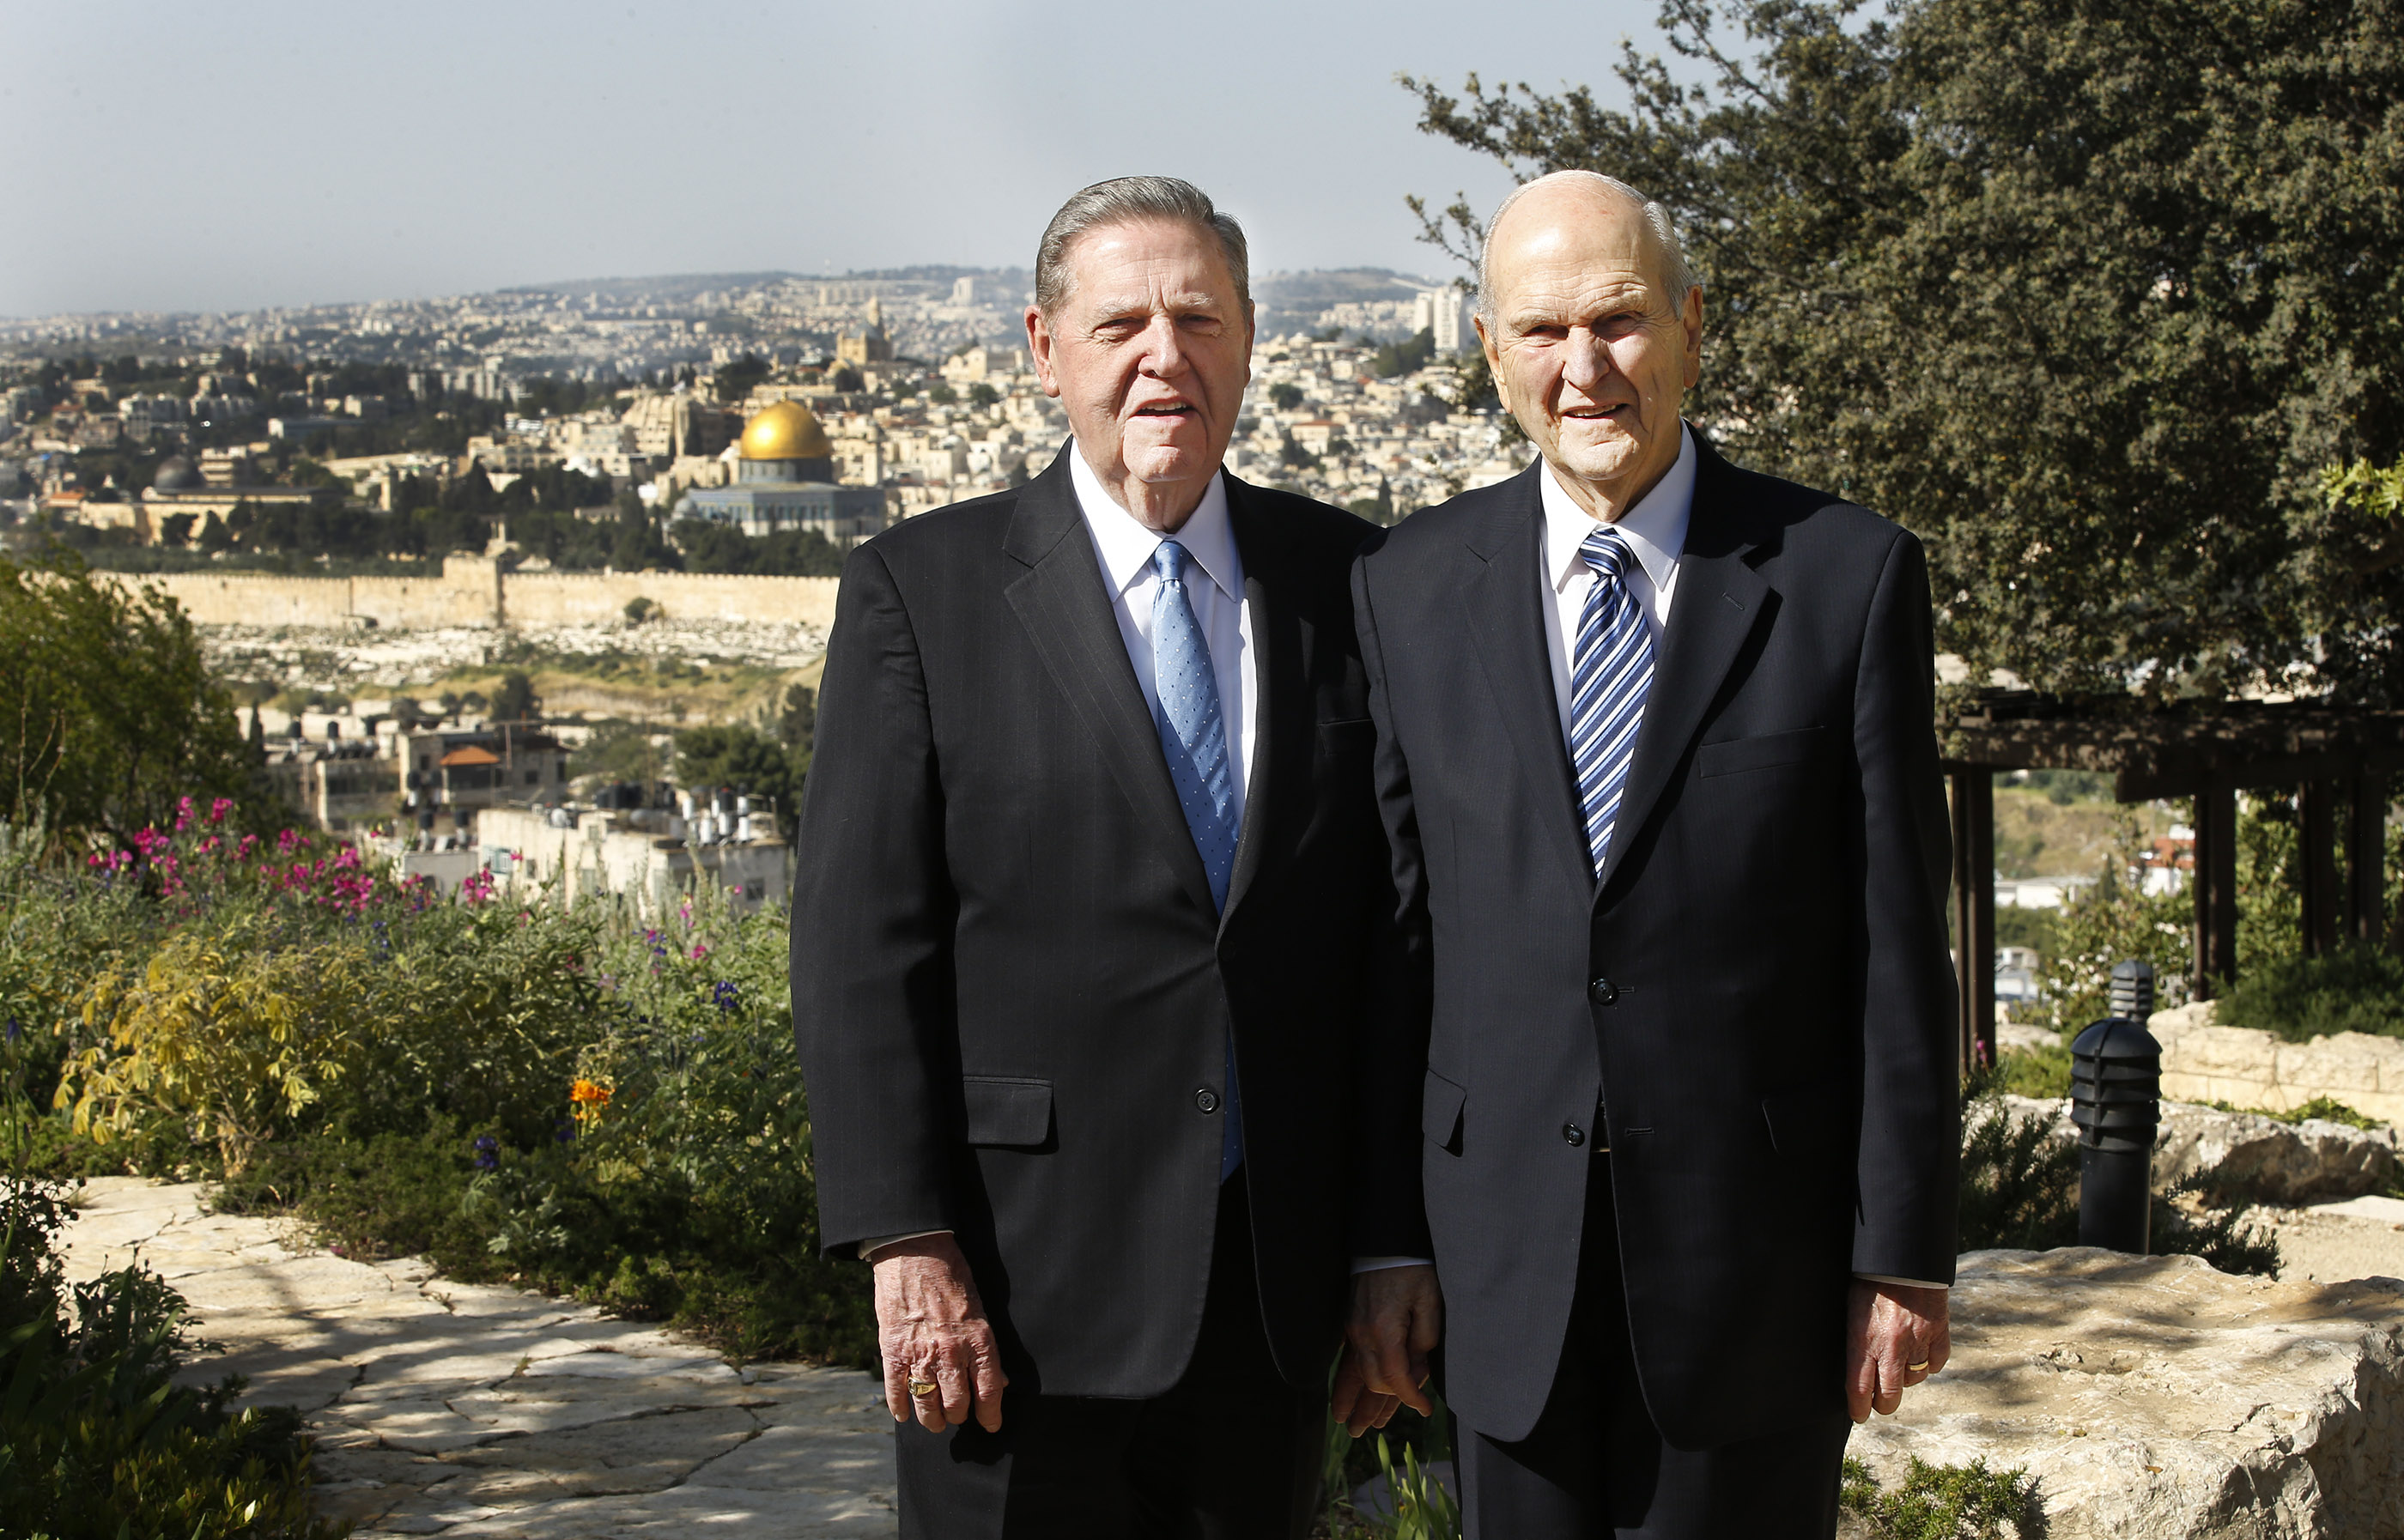 President Russell M. Nelson, president of The Church of Jesus Christ of Latter-day Saints, right, and Elder Jeffrey R. Holland, of the Quorum of the Twelve Apostles, stand together at the BYU Jerusalem Center in Jerusalem on Saturday, April 14, 2018.